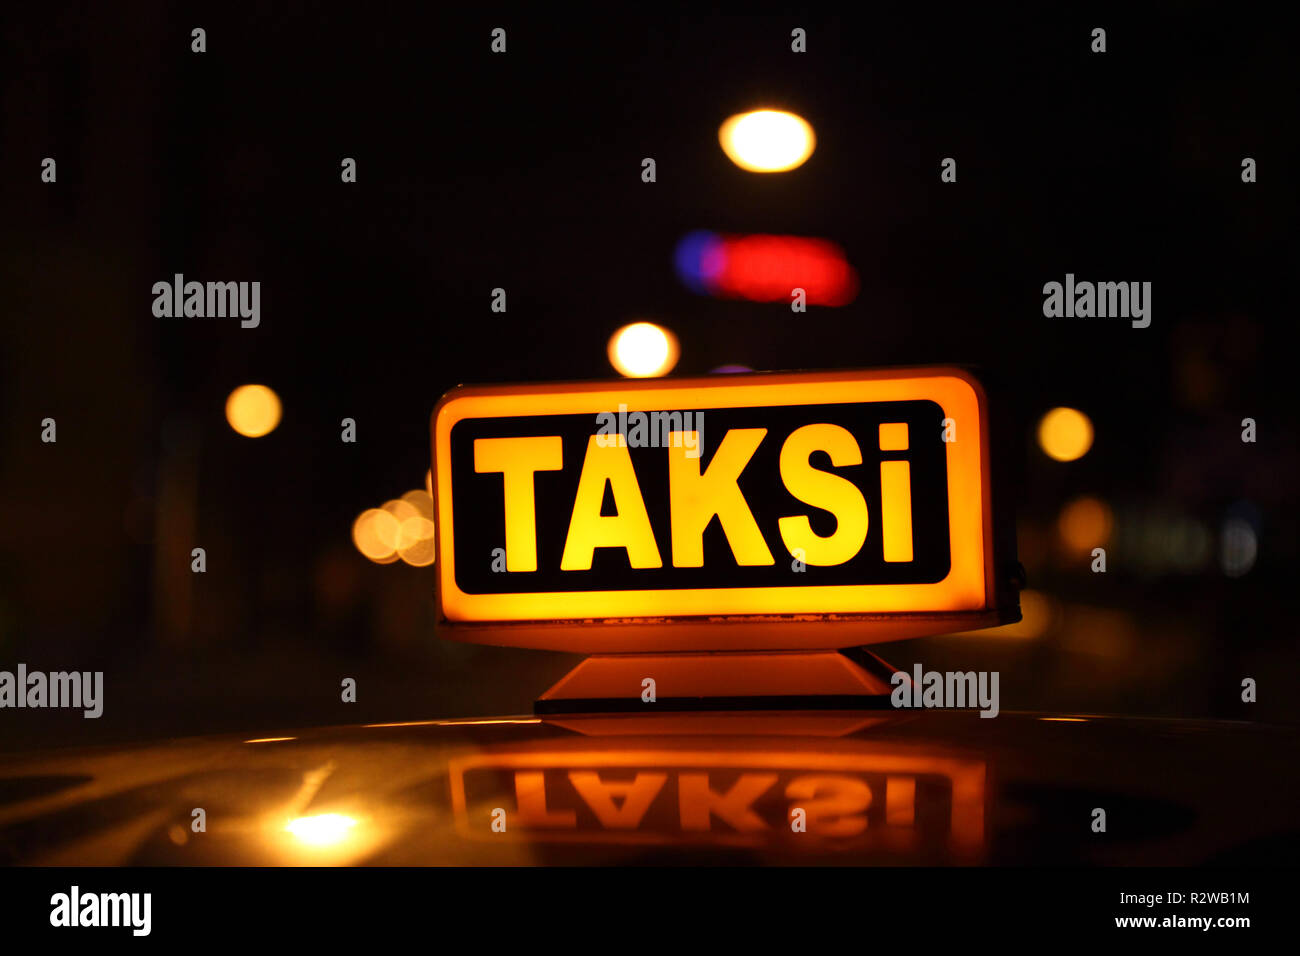 steam taxi Stock Photo